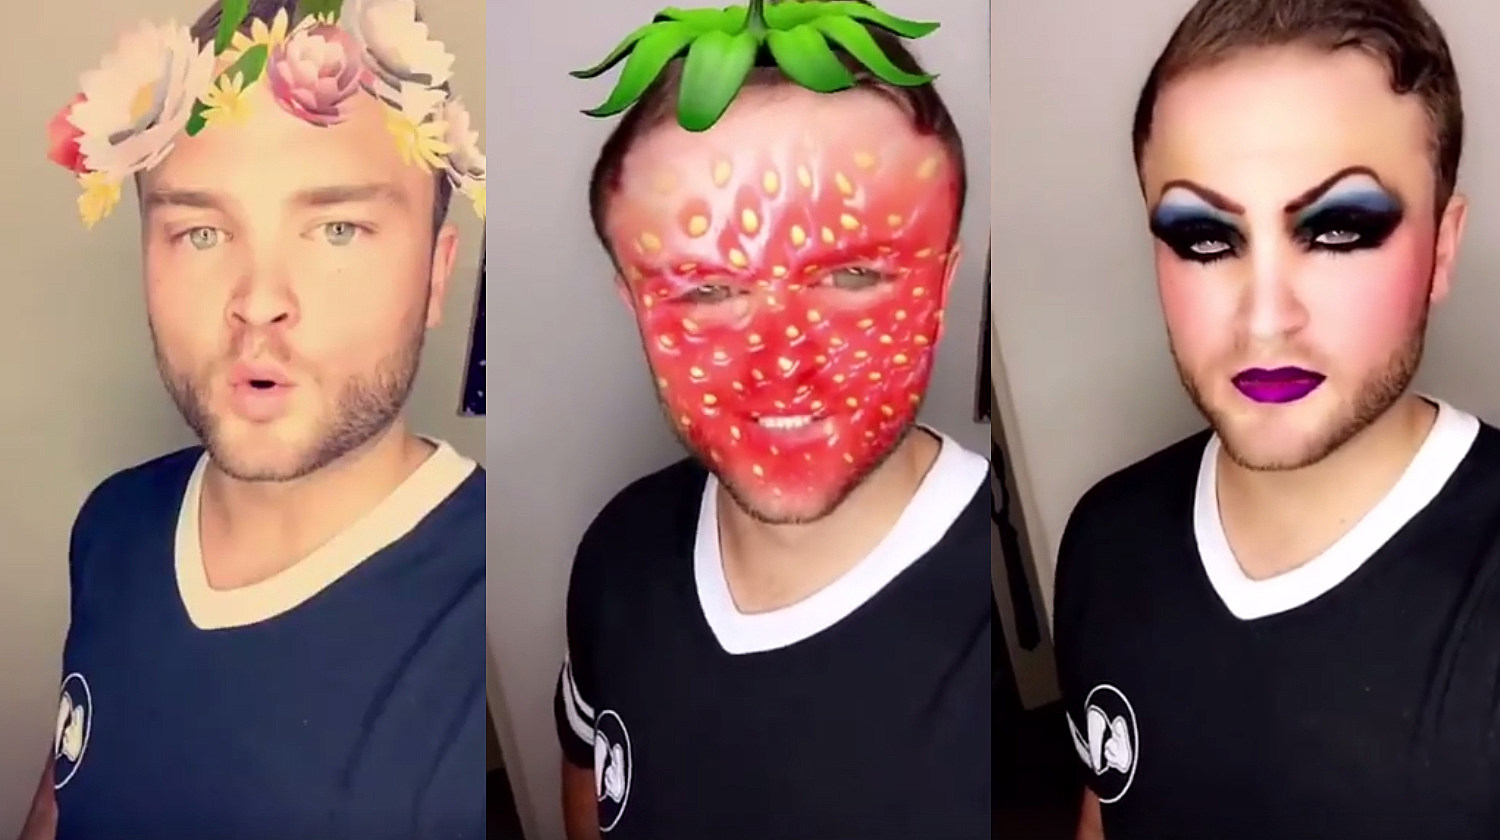 this guy hilariously runs through all the snapchat filters